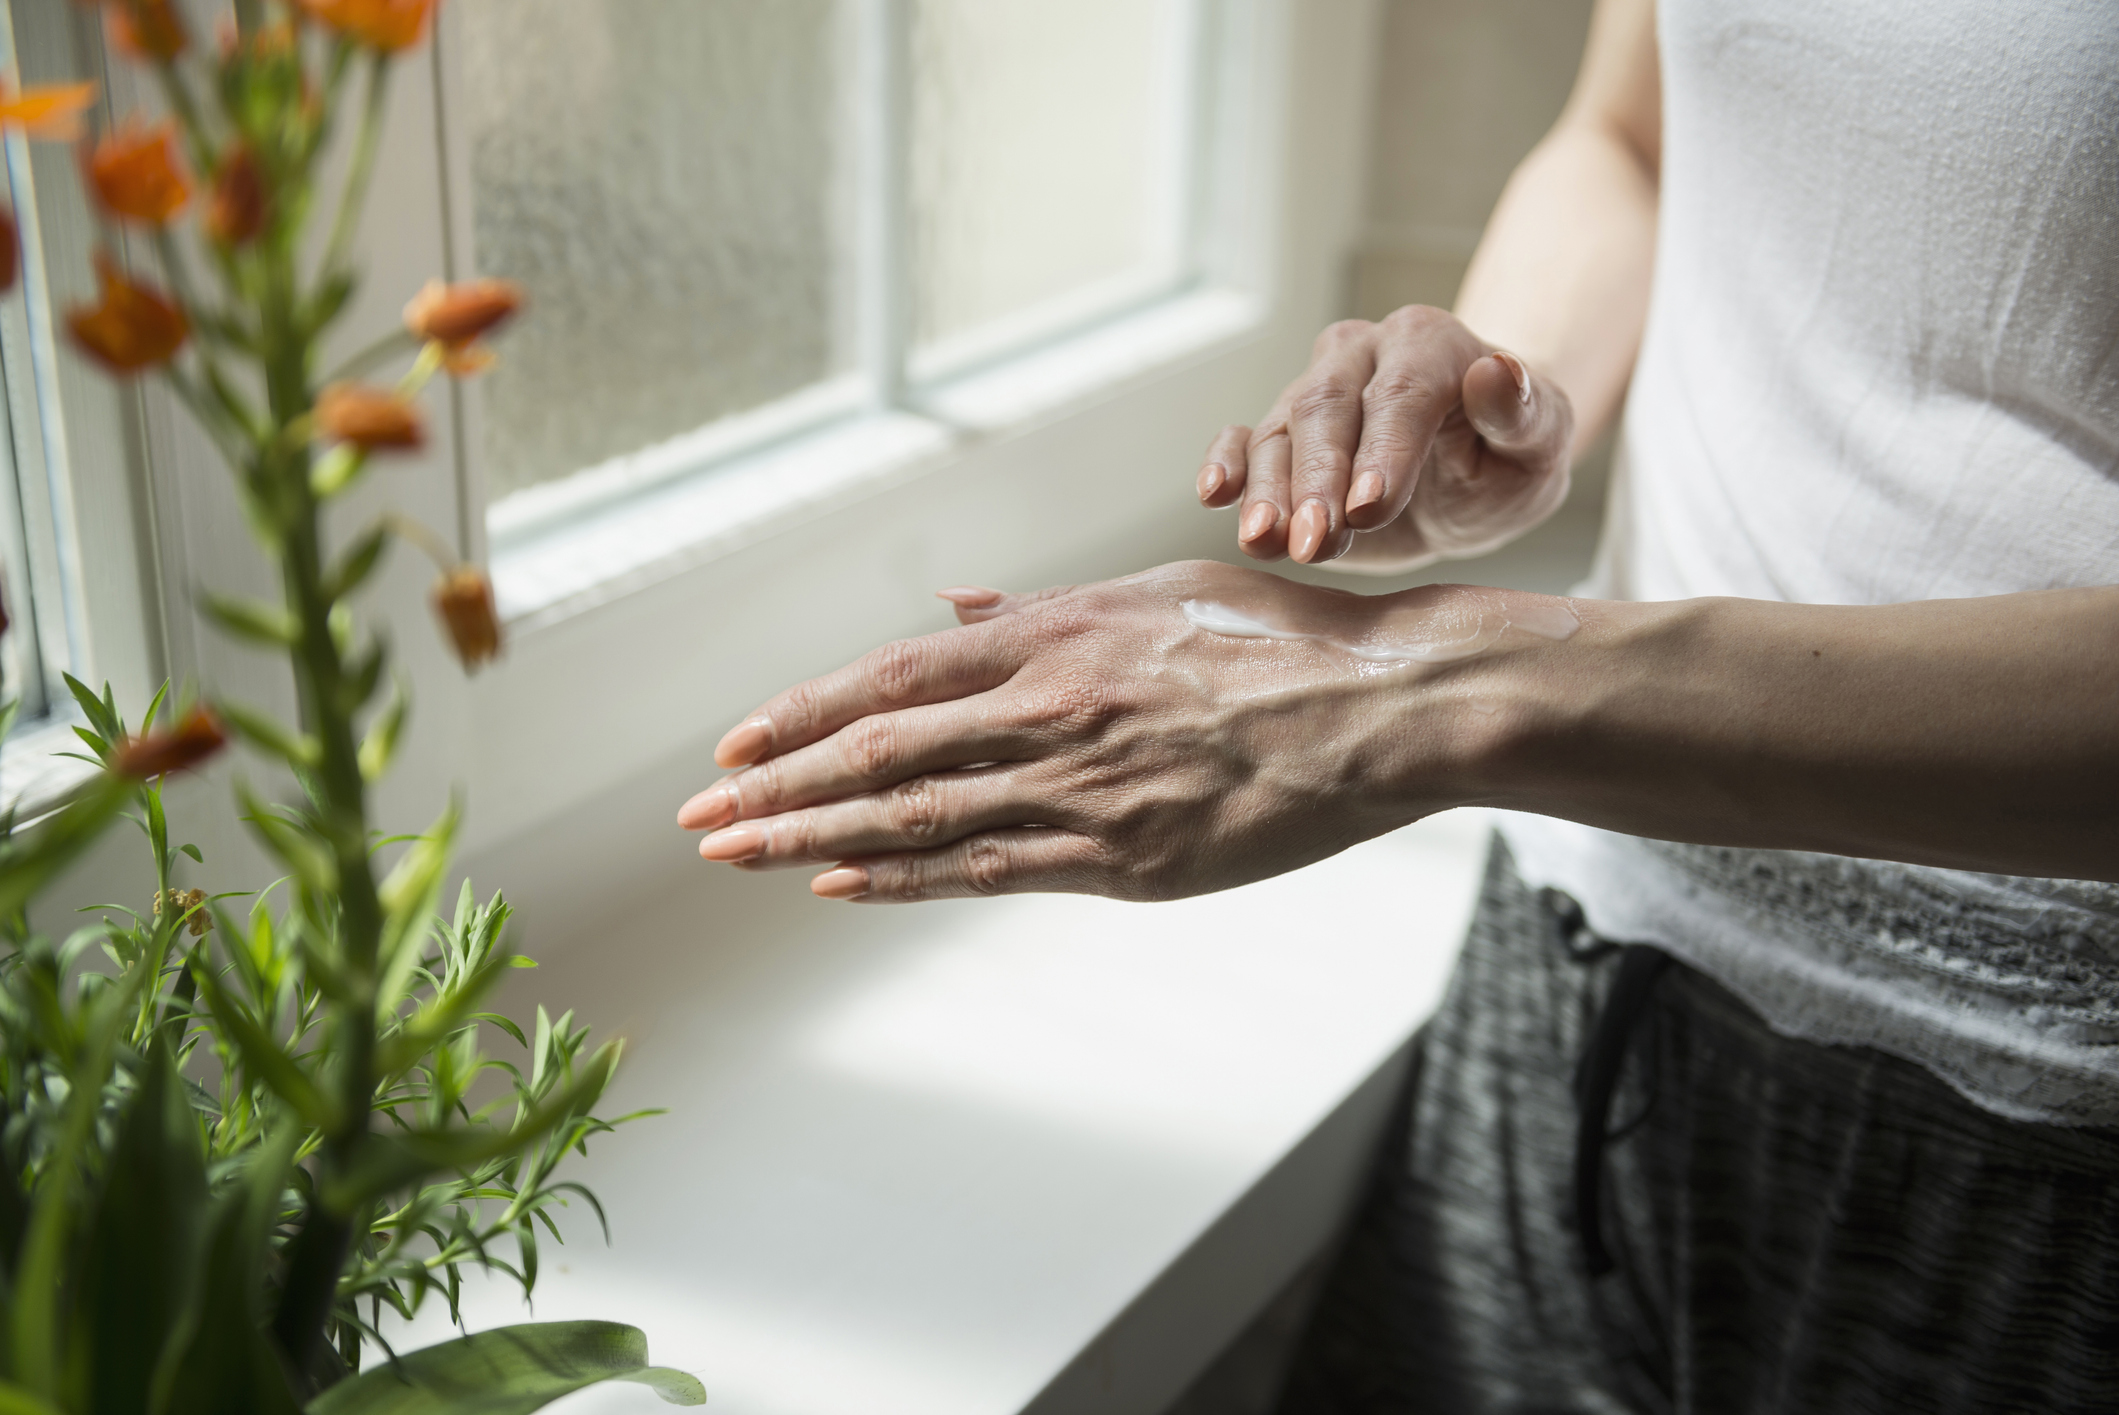 10 Hydrating Hand Creams Every Gardener Should Have